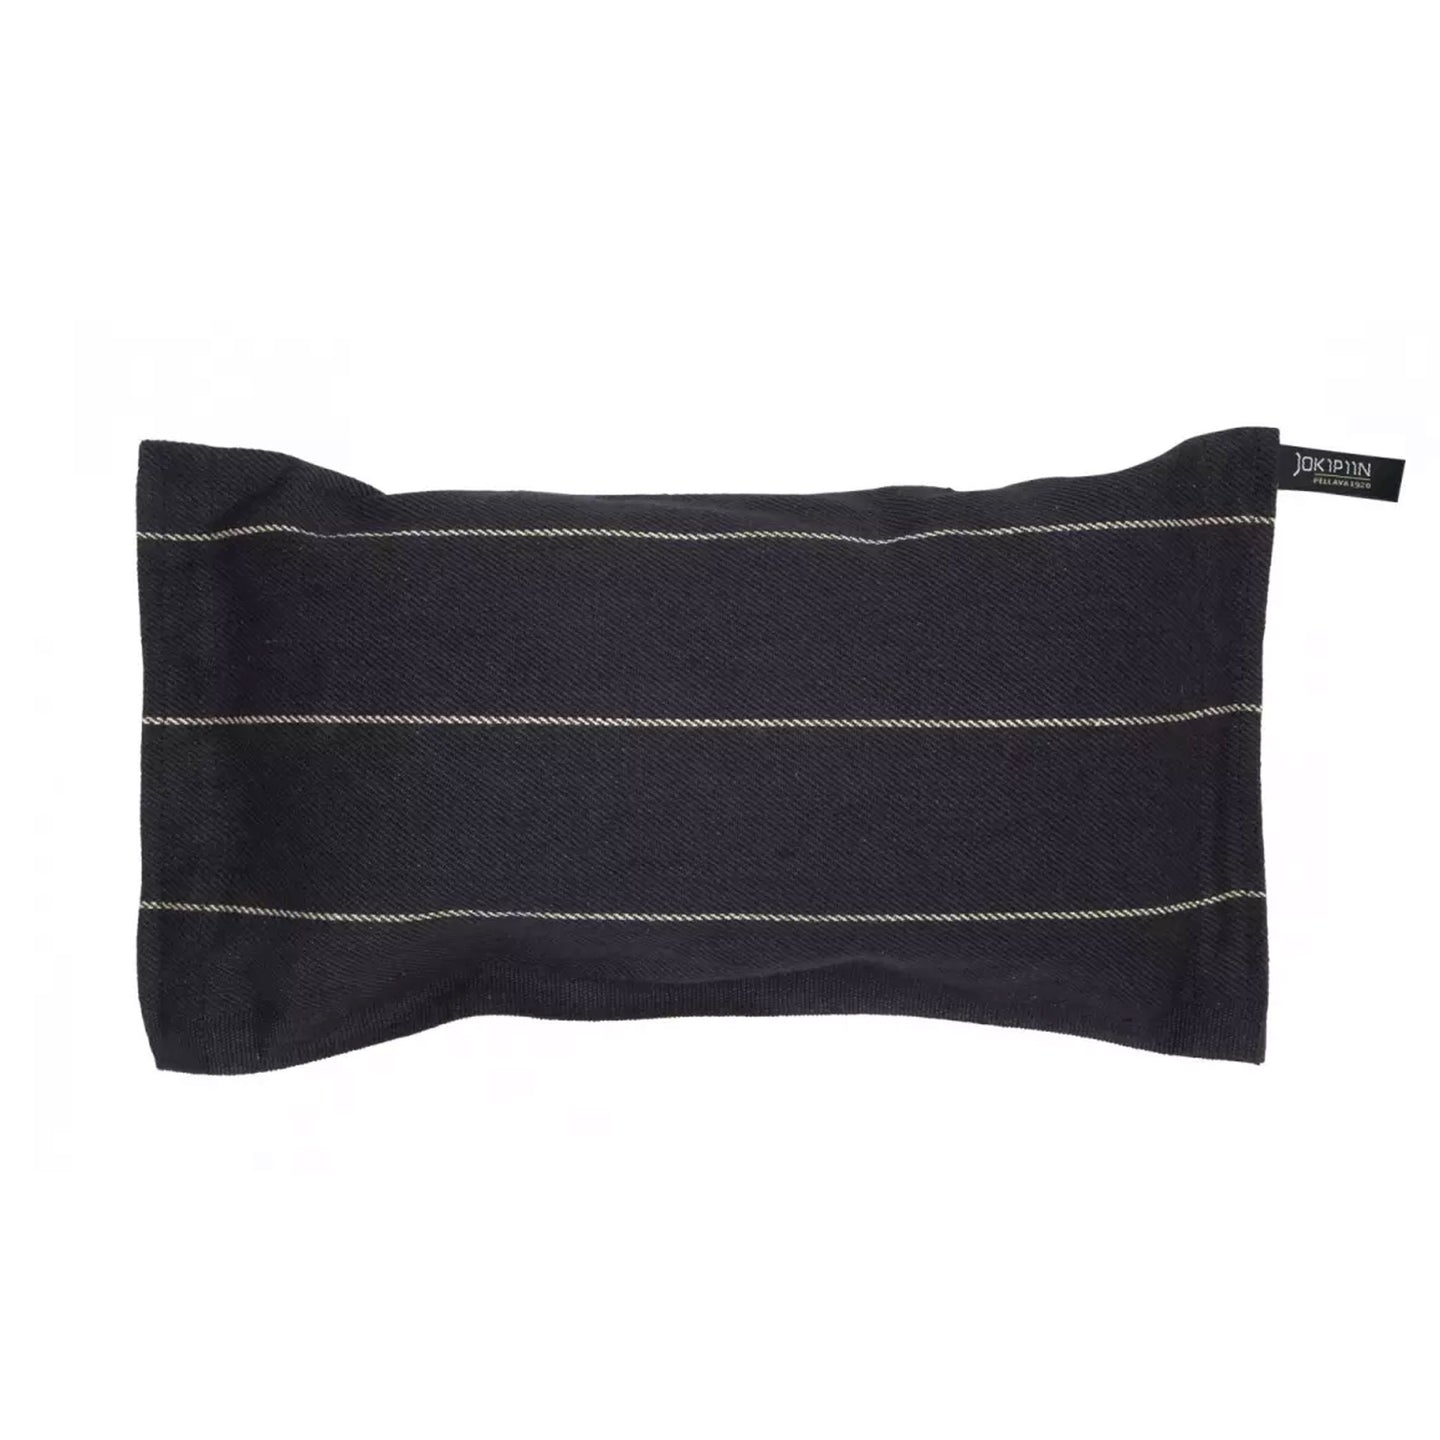 Liituraita Sauna Pillow black by Jokipiin Pellava Default Title Sauna Pillow Finnmark Sauna